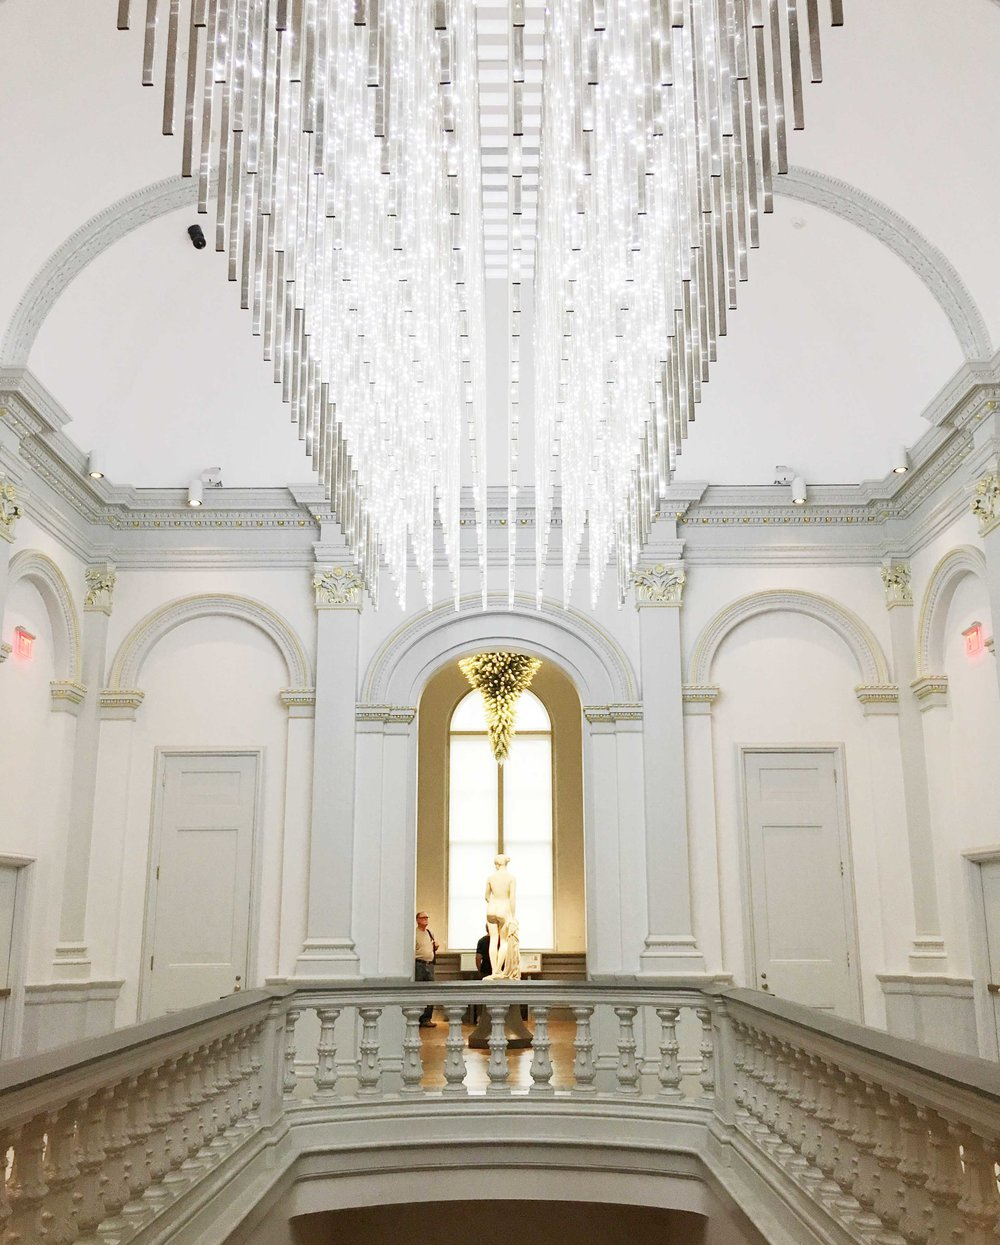 Smithsonian Renwick Gallery in Washington D.C.